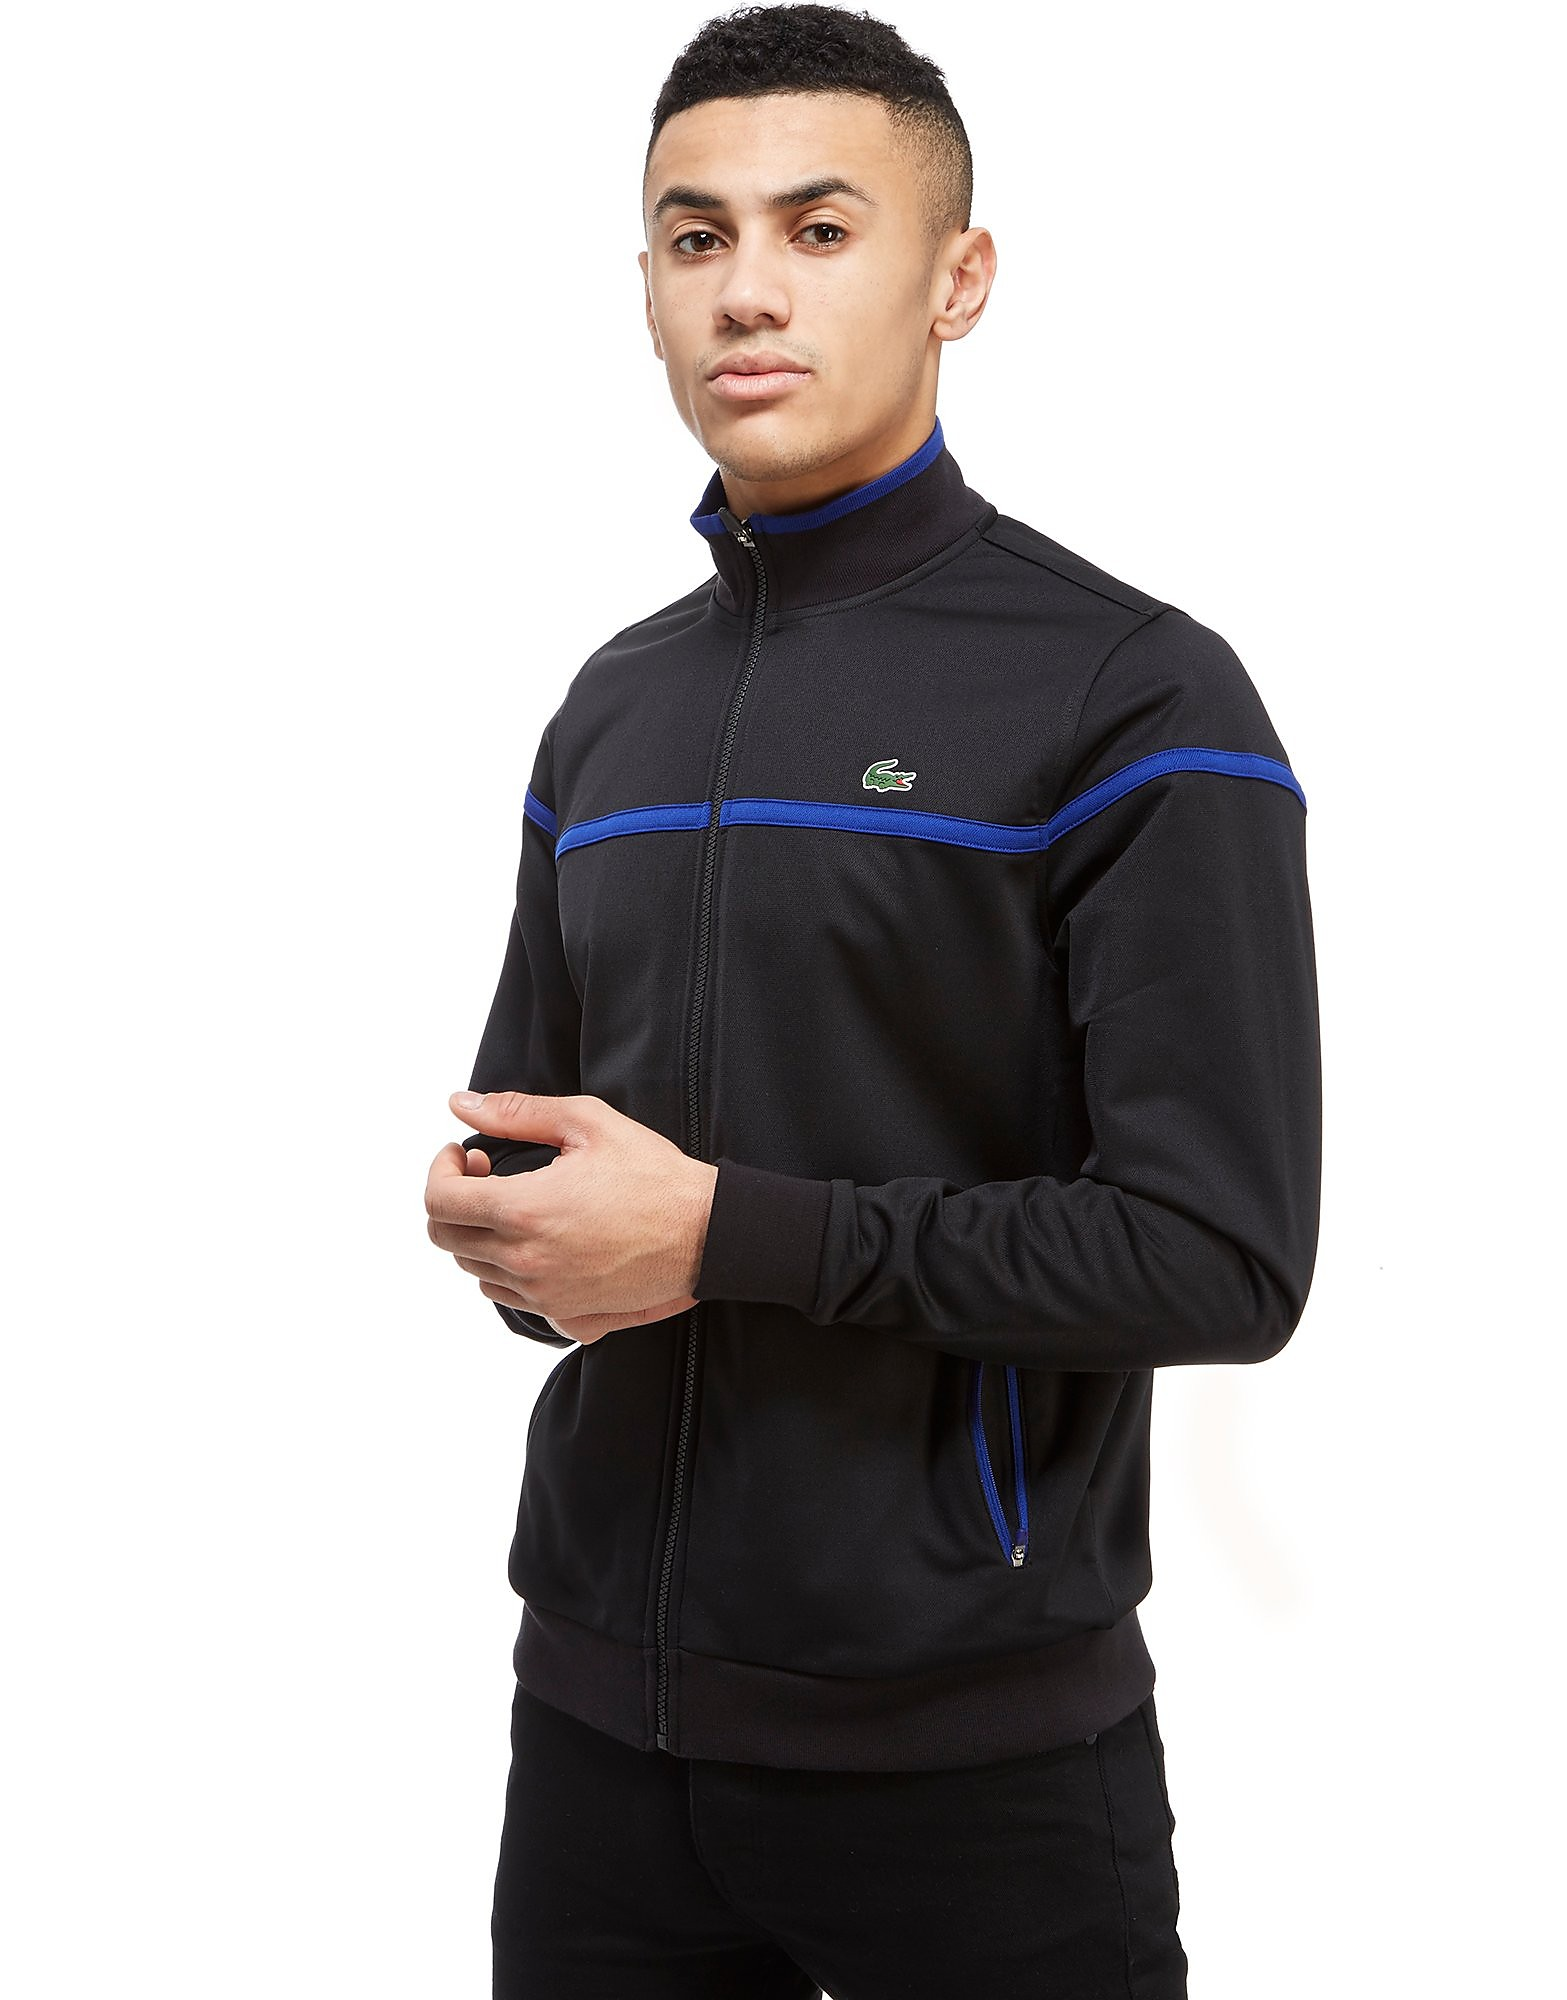 Lacoste Track Top